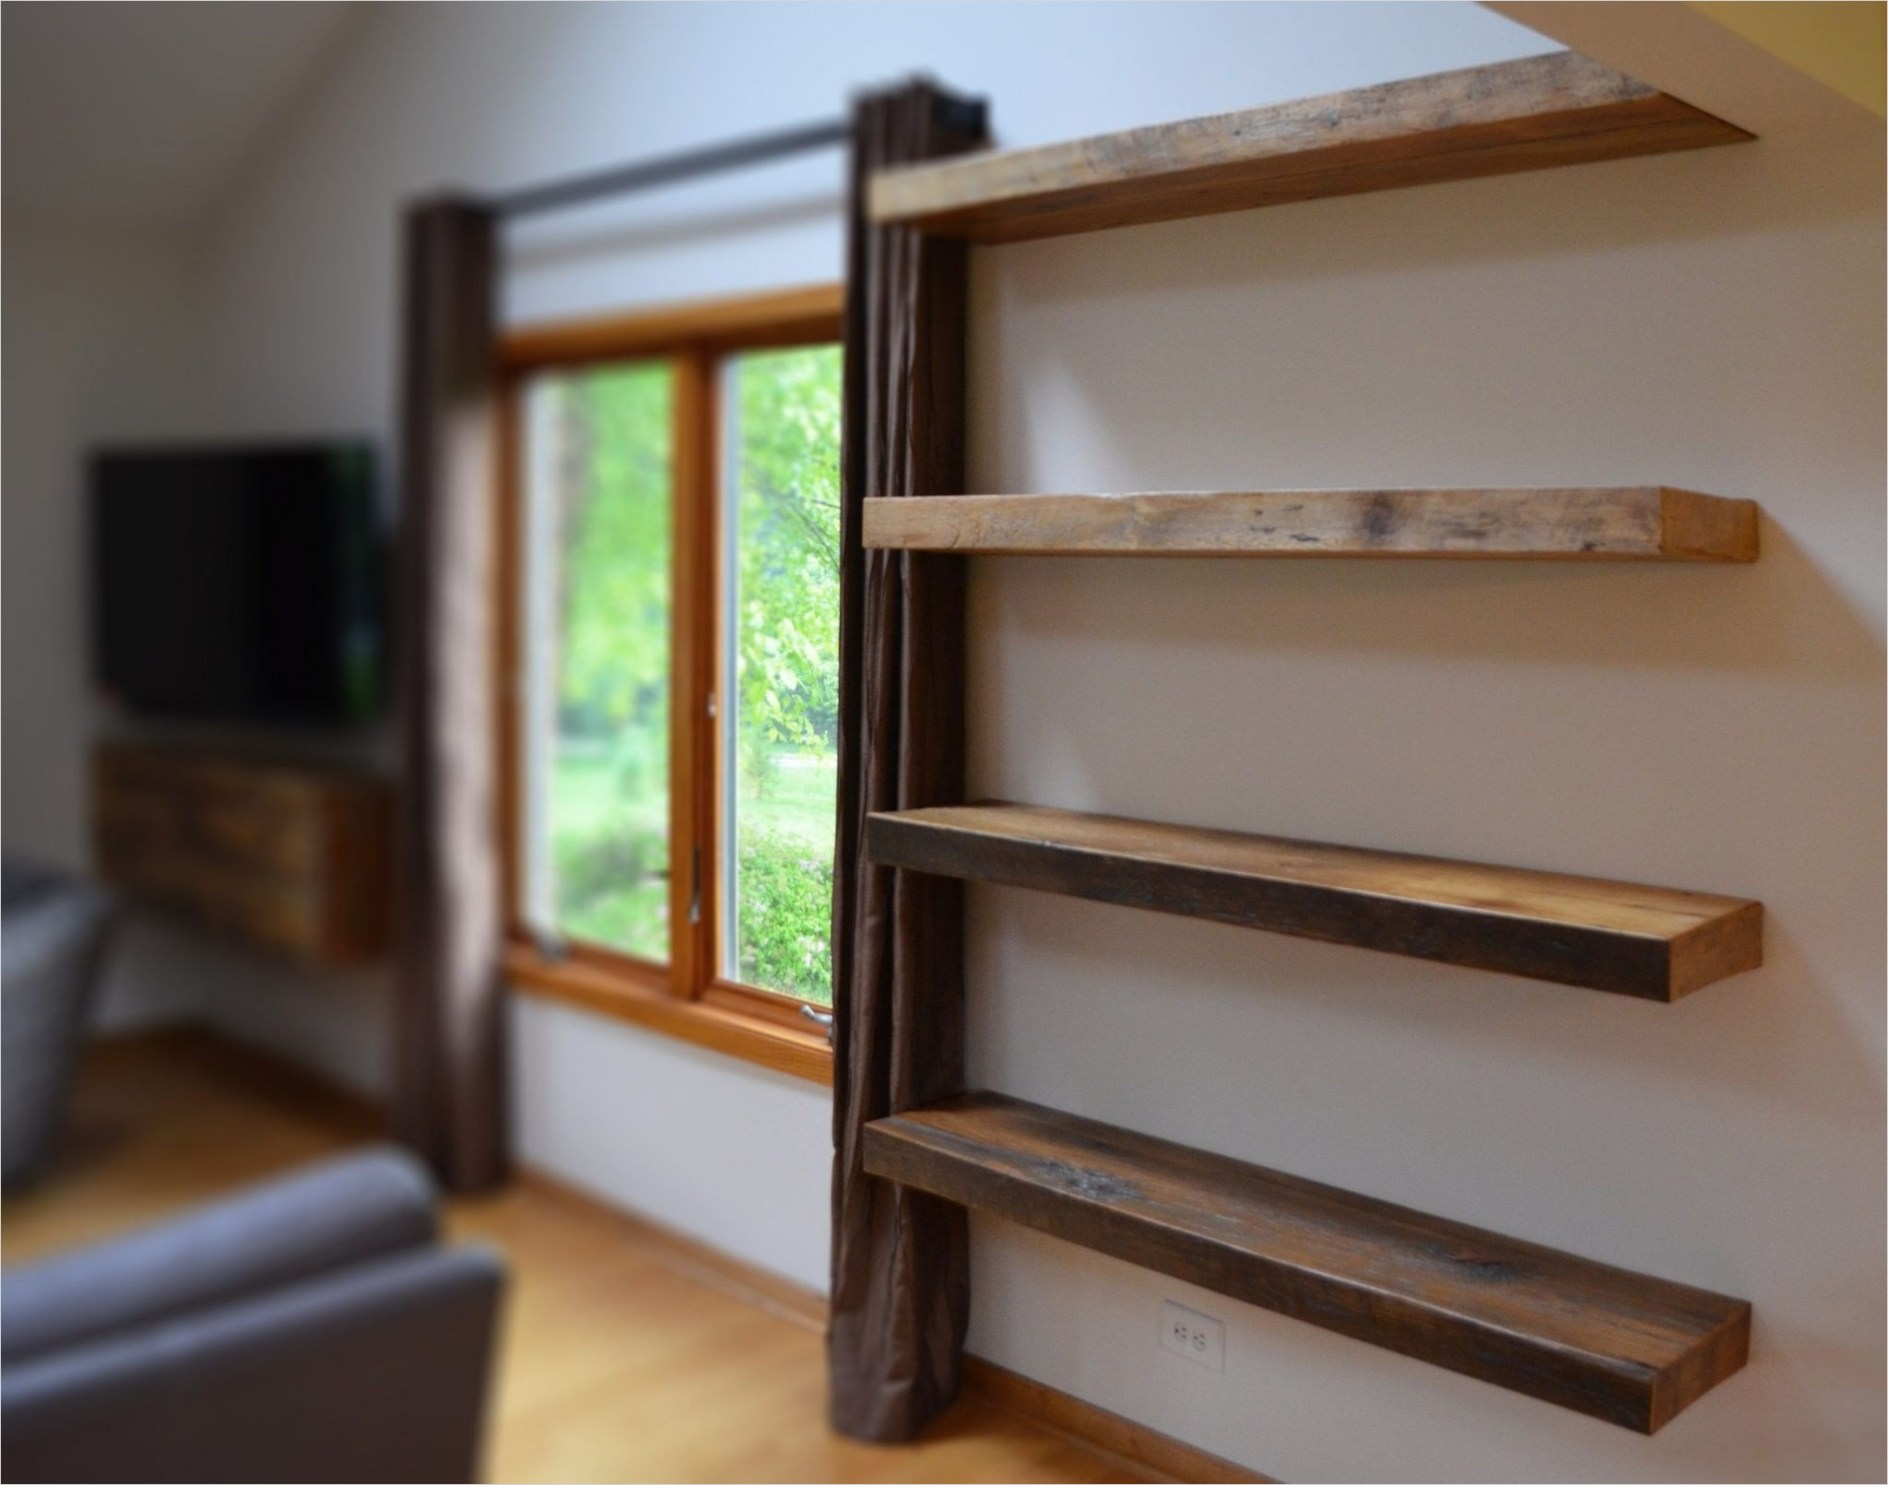 45 Creative Rustic Wall Mounted Bookshelves 75 Rustic Wood Bookshelves 1